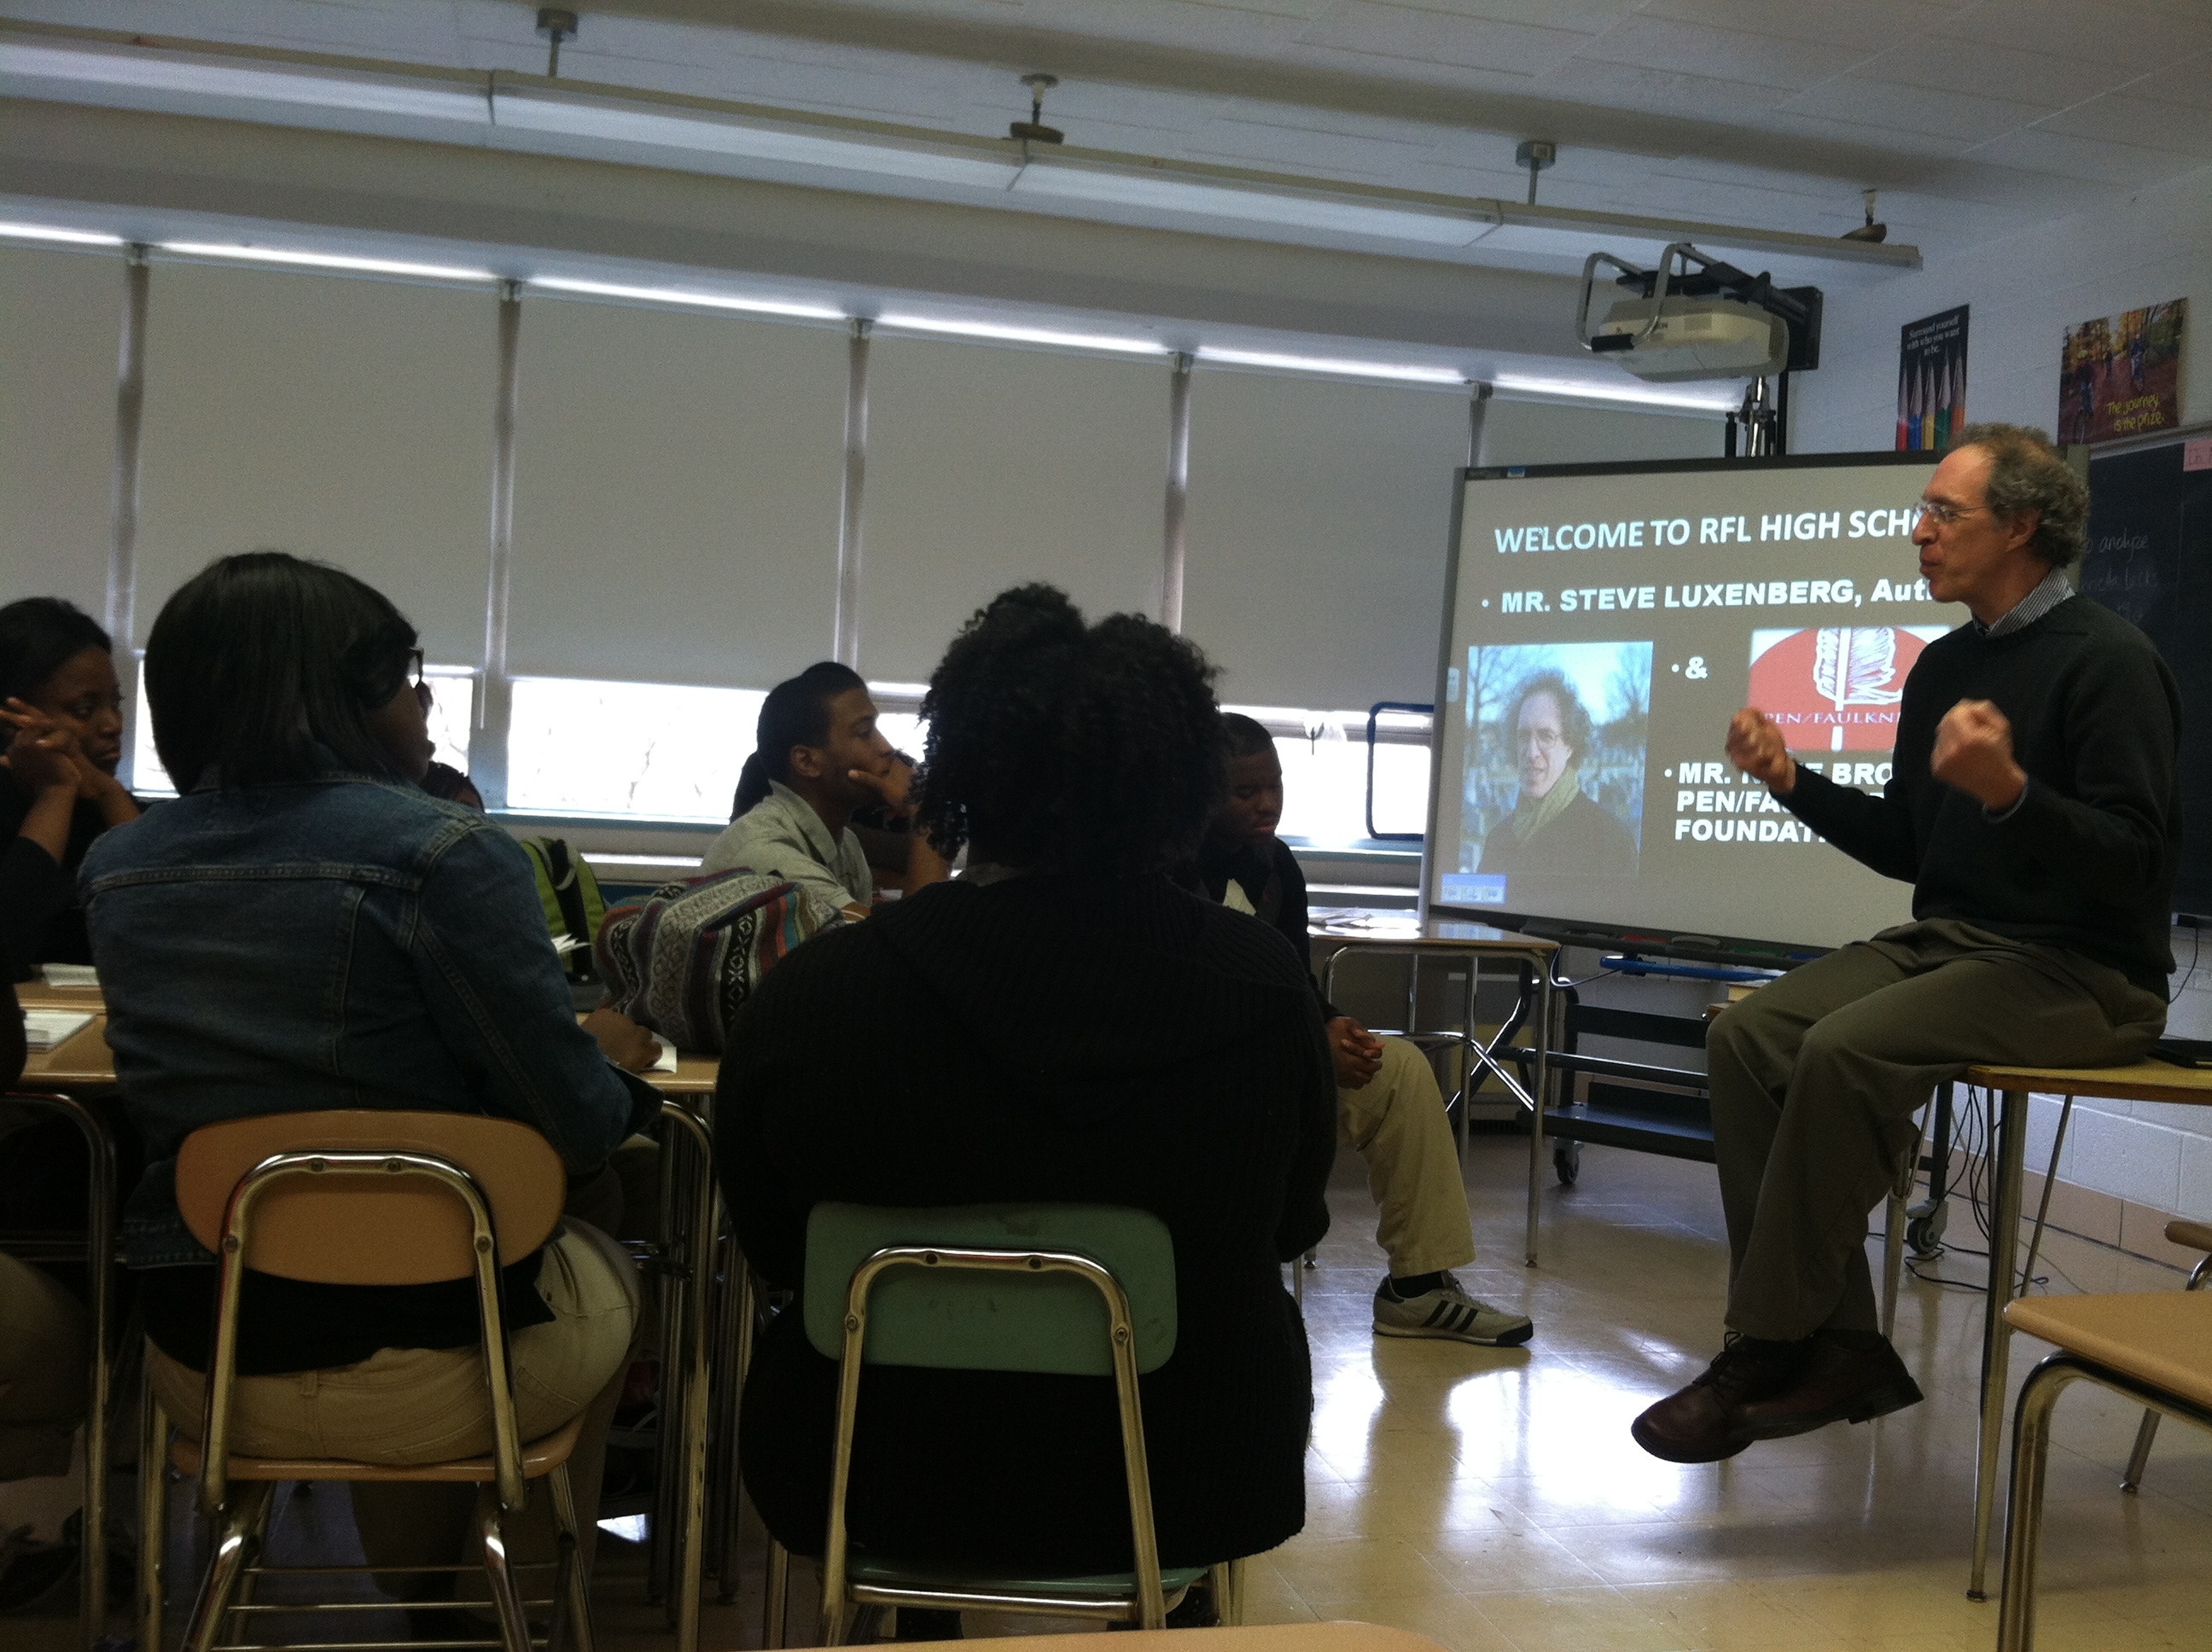 Author Steve Luxenberg discusses his book Annie's Ghosts with students at Reginald F. Lewis High School of Business & Law in Baltimore, MD